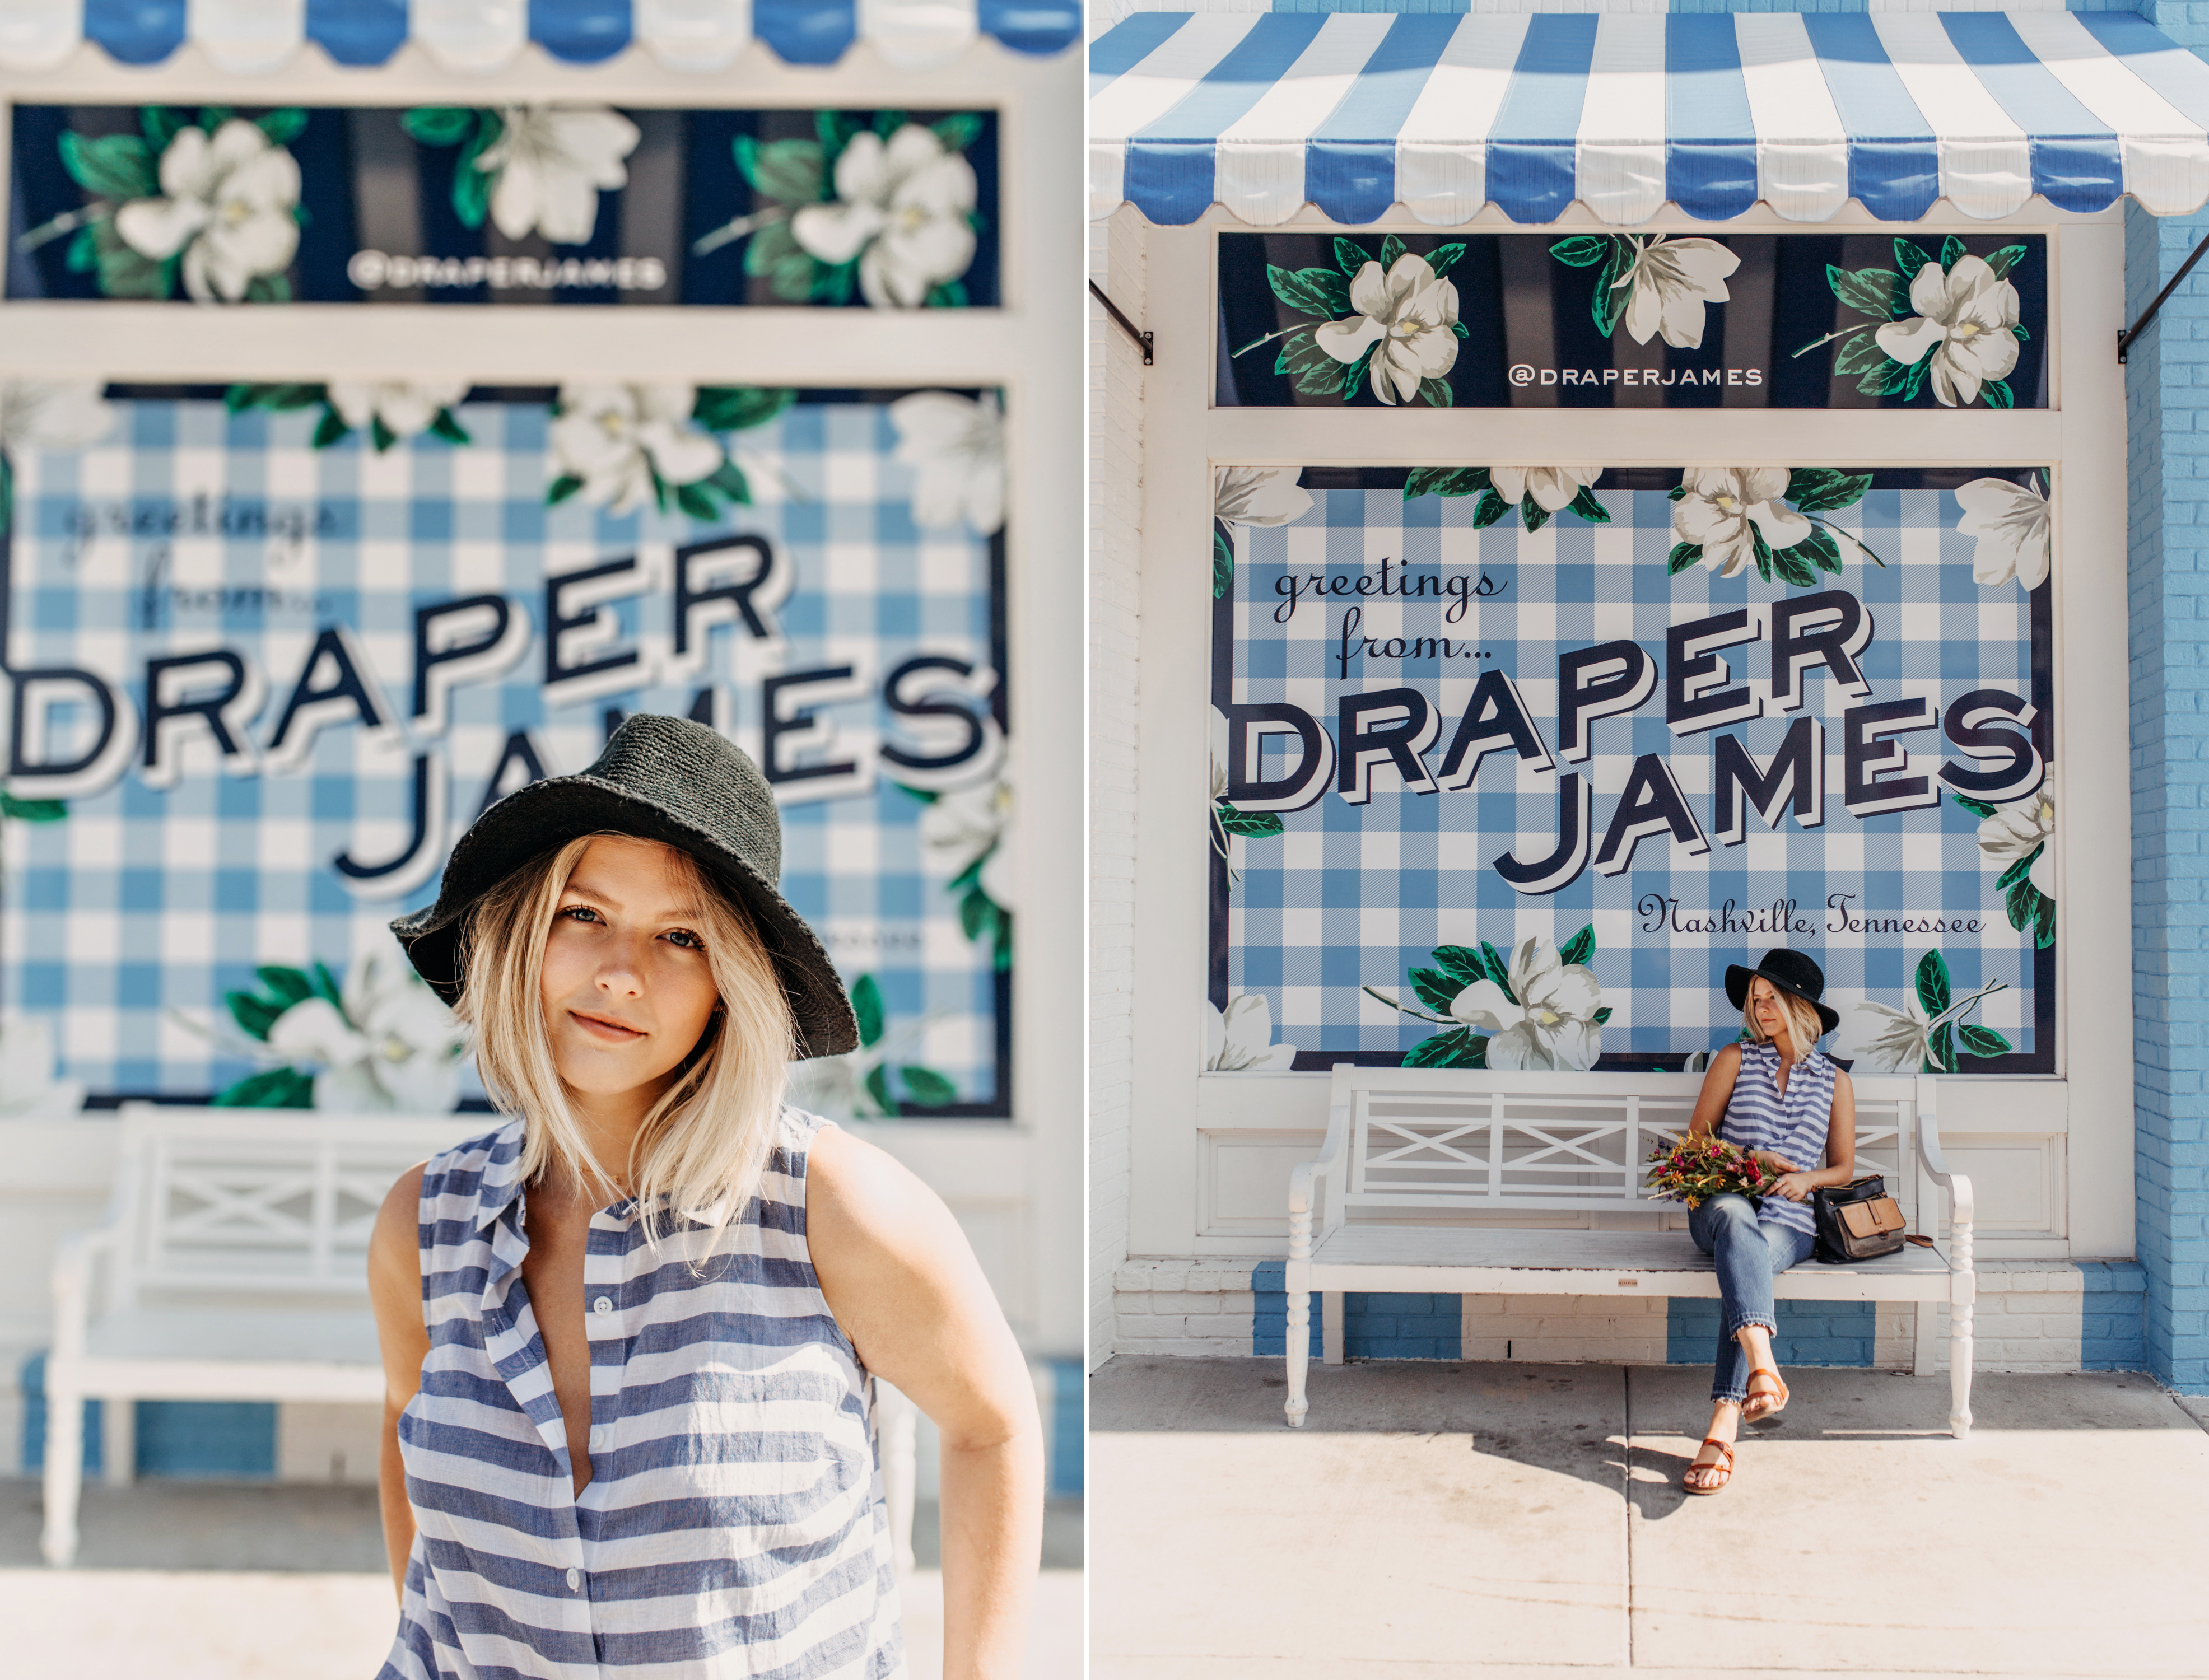 Draper-James-Mural-12th-South-Nashville-Diptych